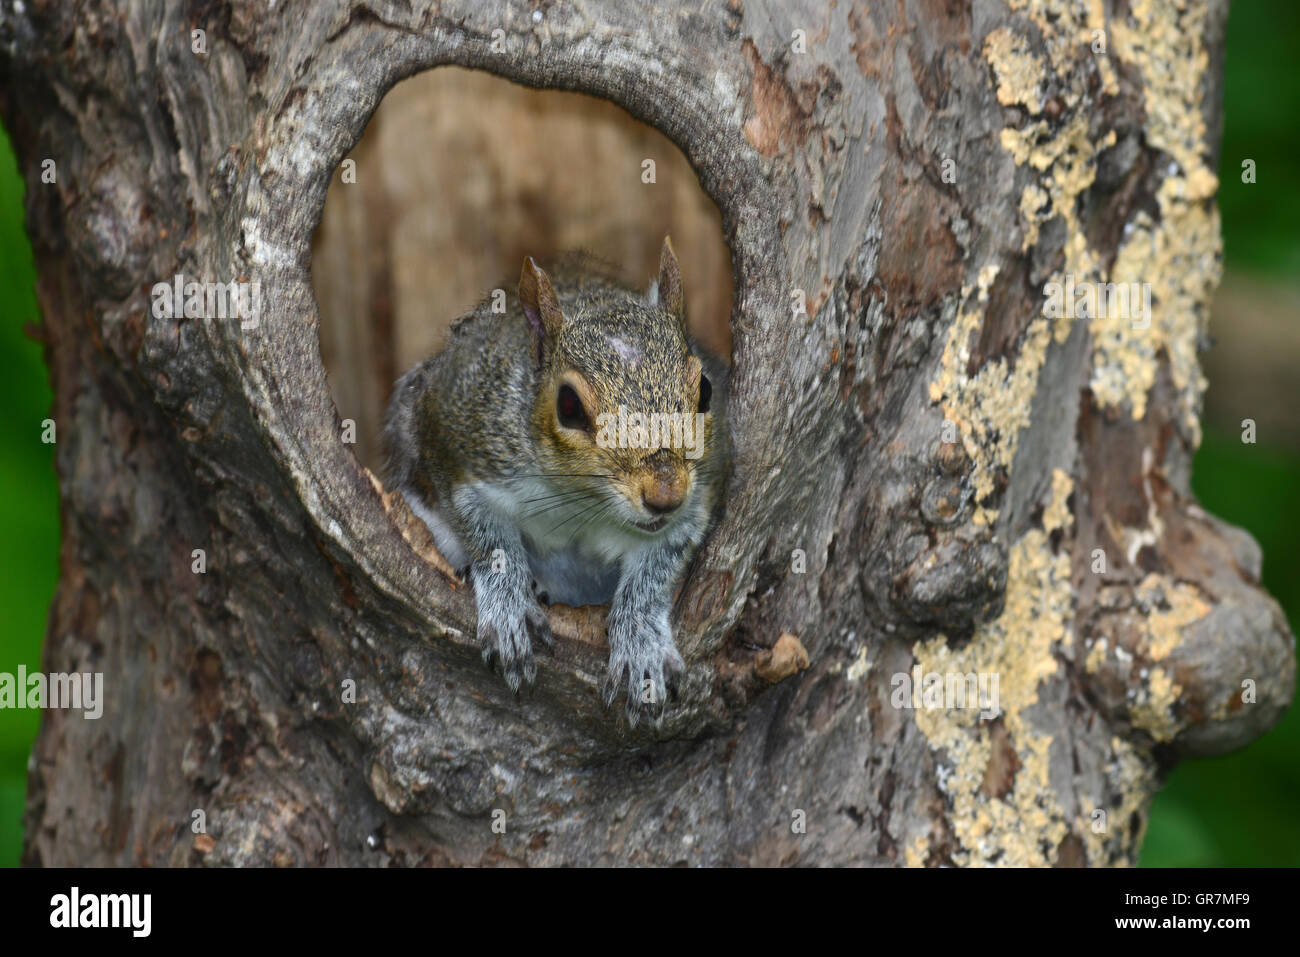 A grey squirrel coming out of a hole in a tree trunk UK - Stock Image